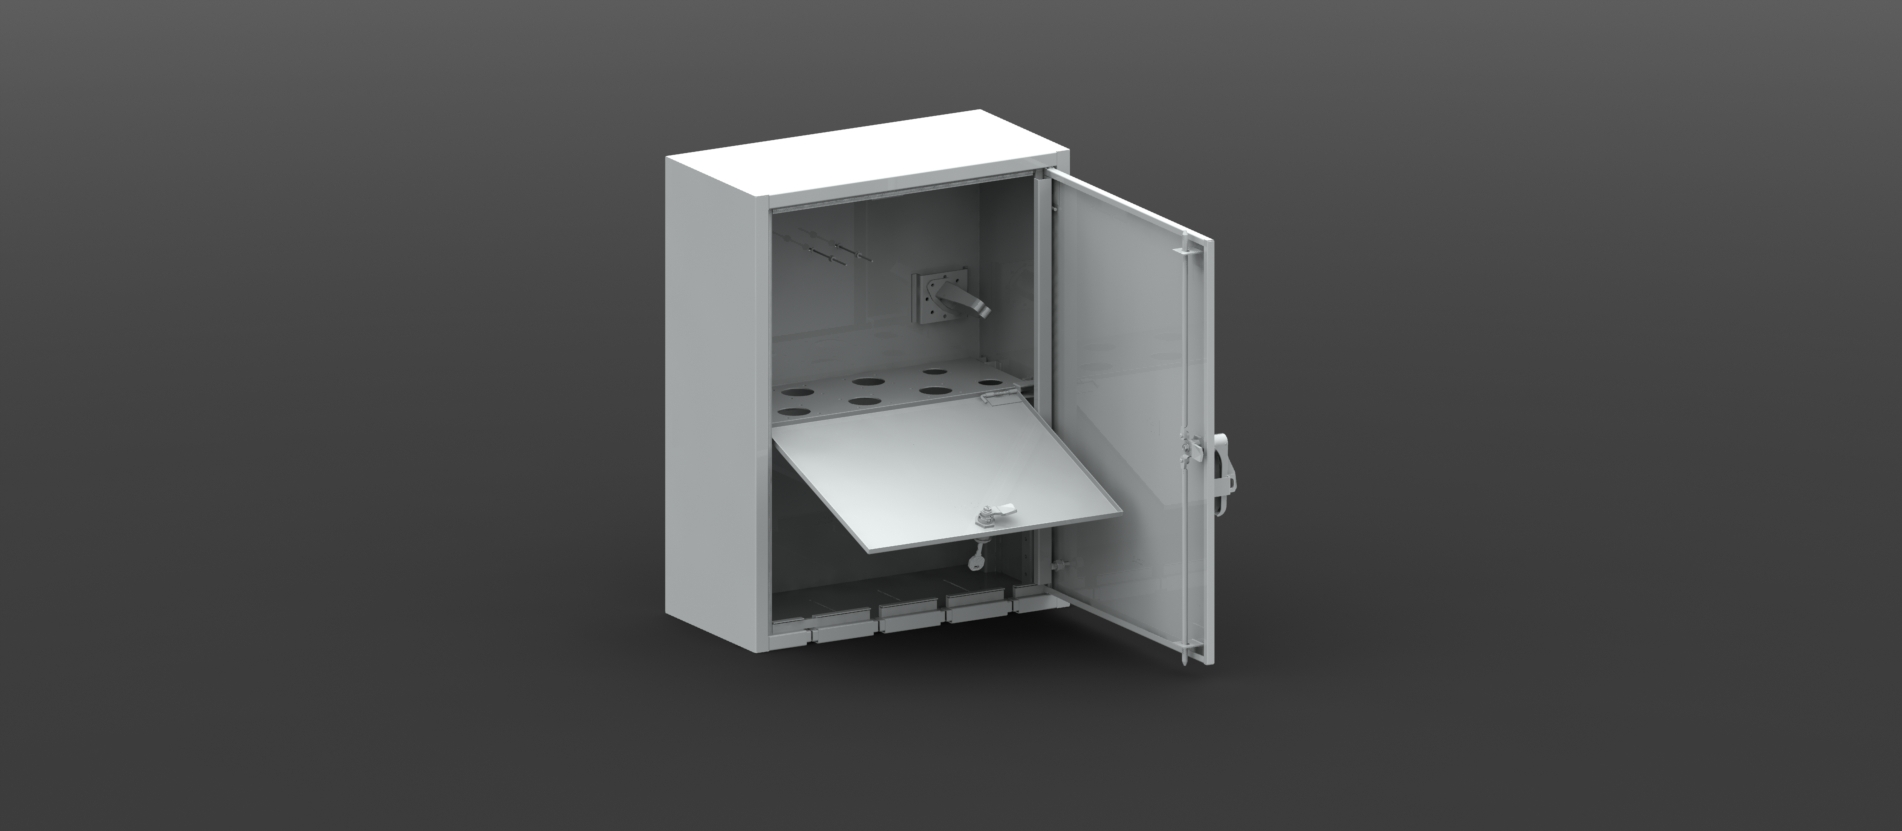 Exterior building communications enclosure for Exterior building products